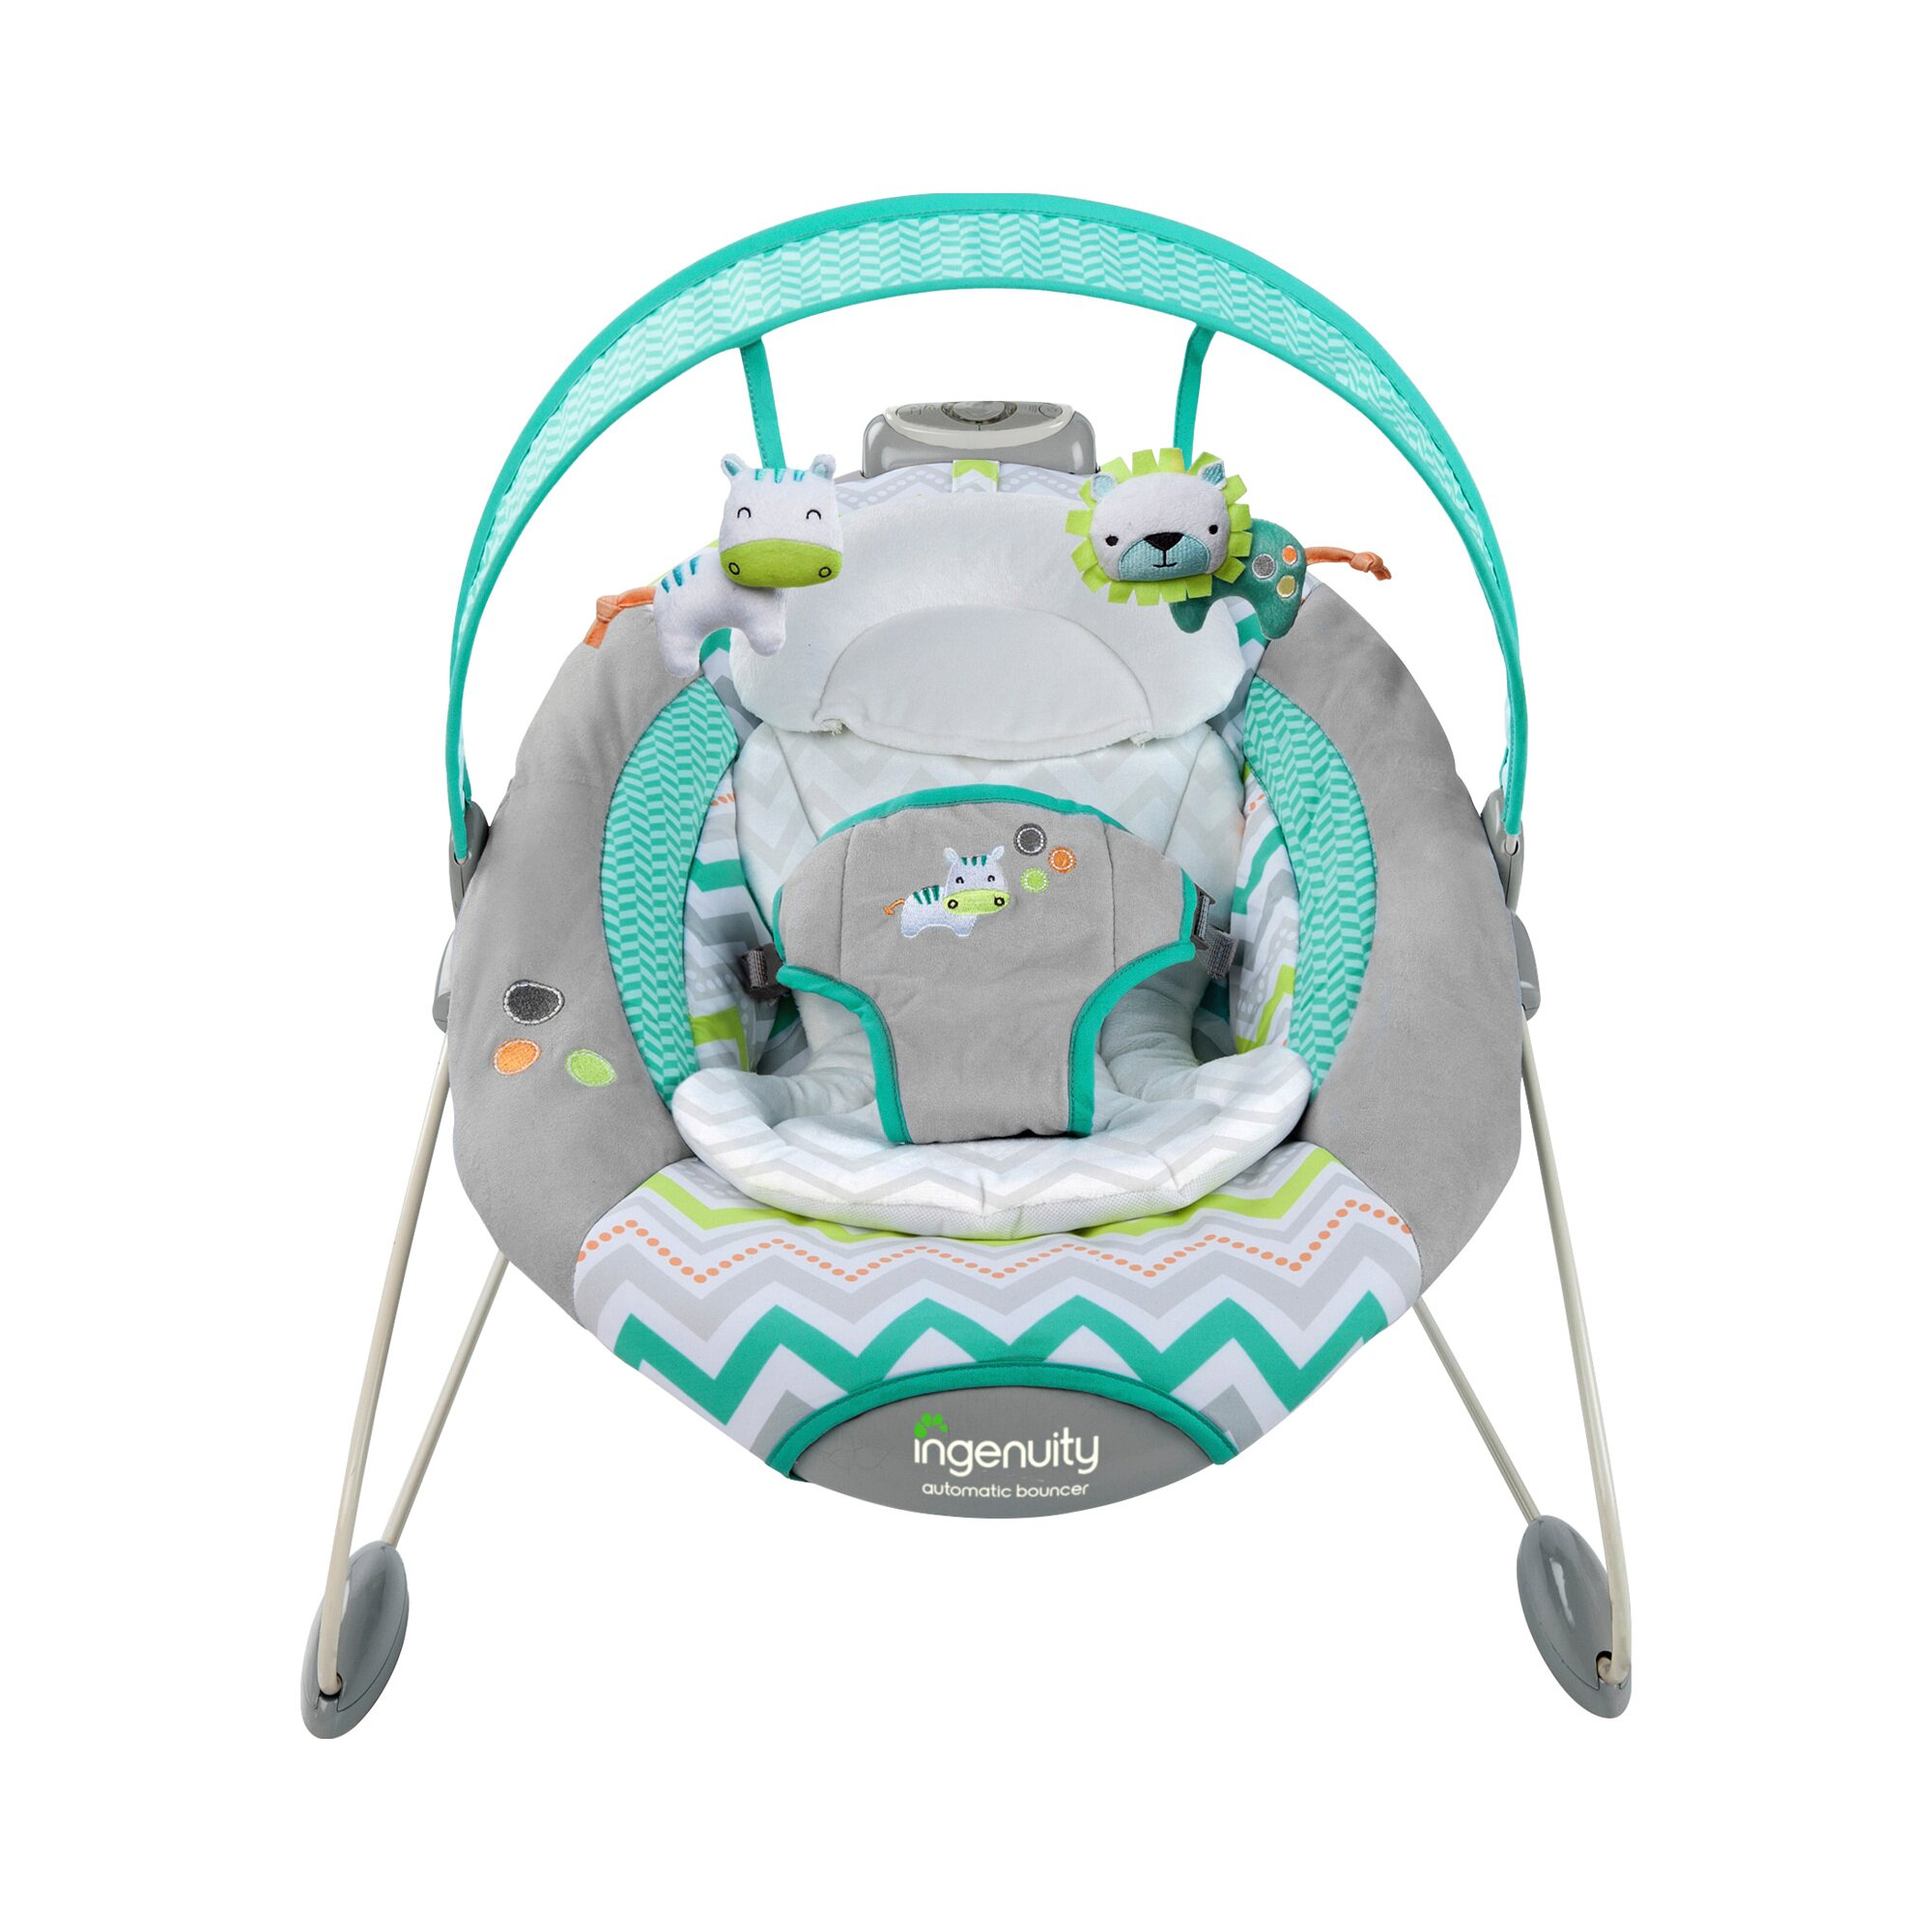 Ingenuity Babywippe SmartBounce Automatic Bouncer™